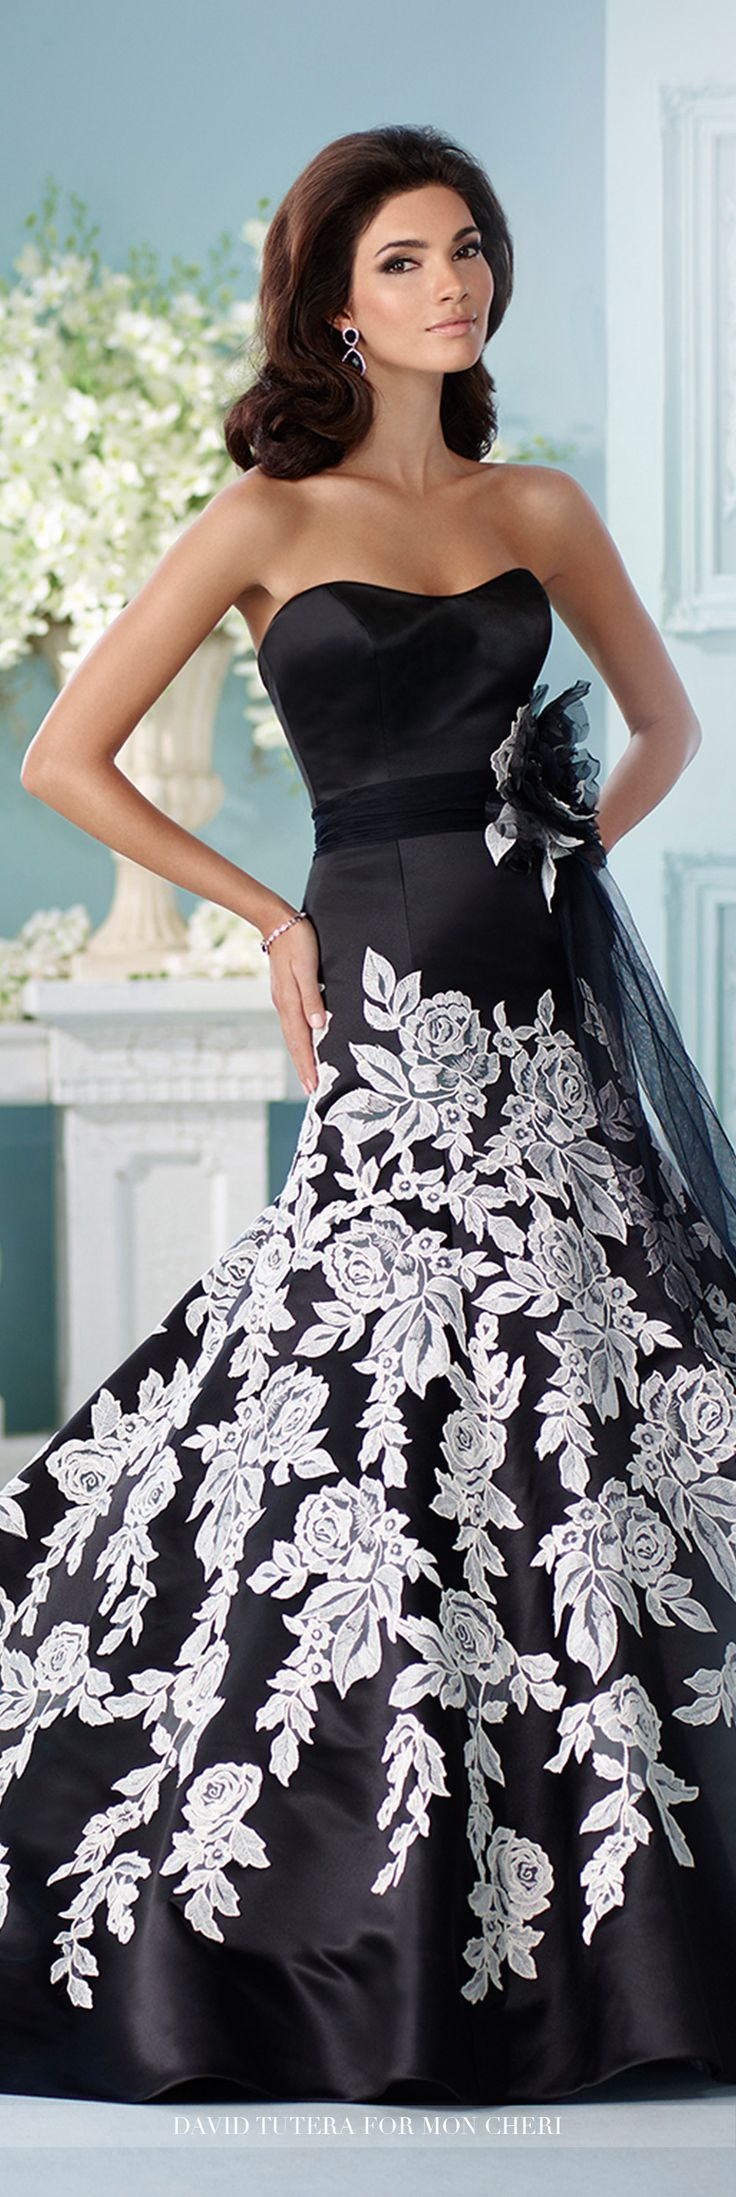 best black tie wedding images on pinterest black tie wedding